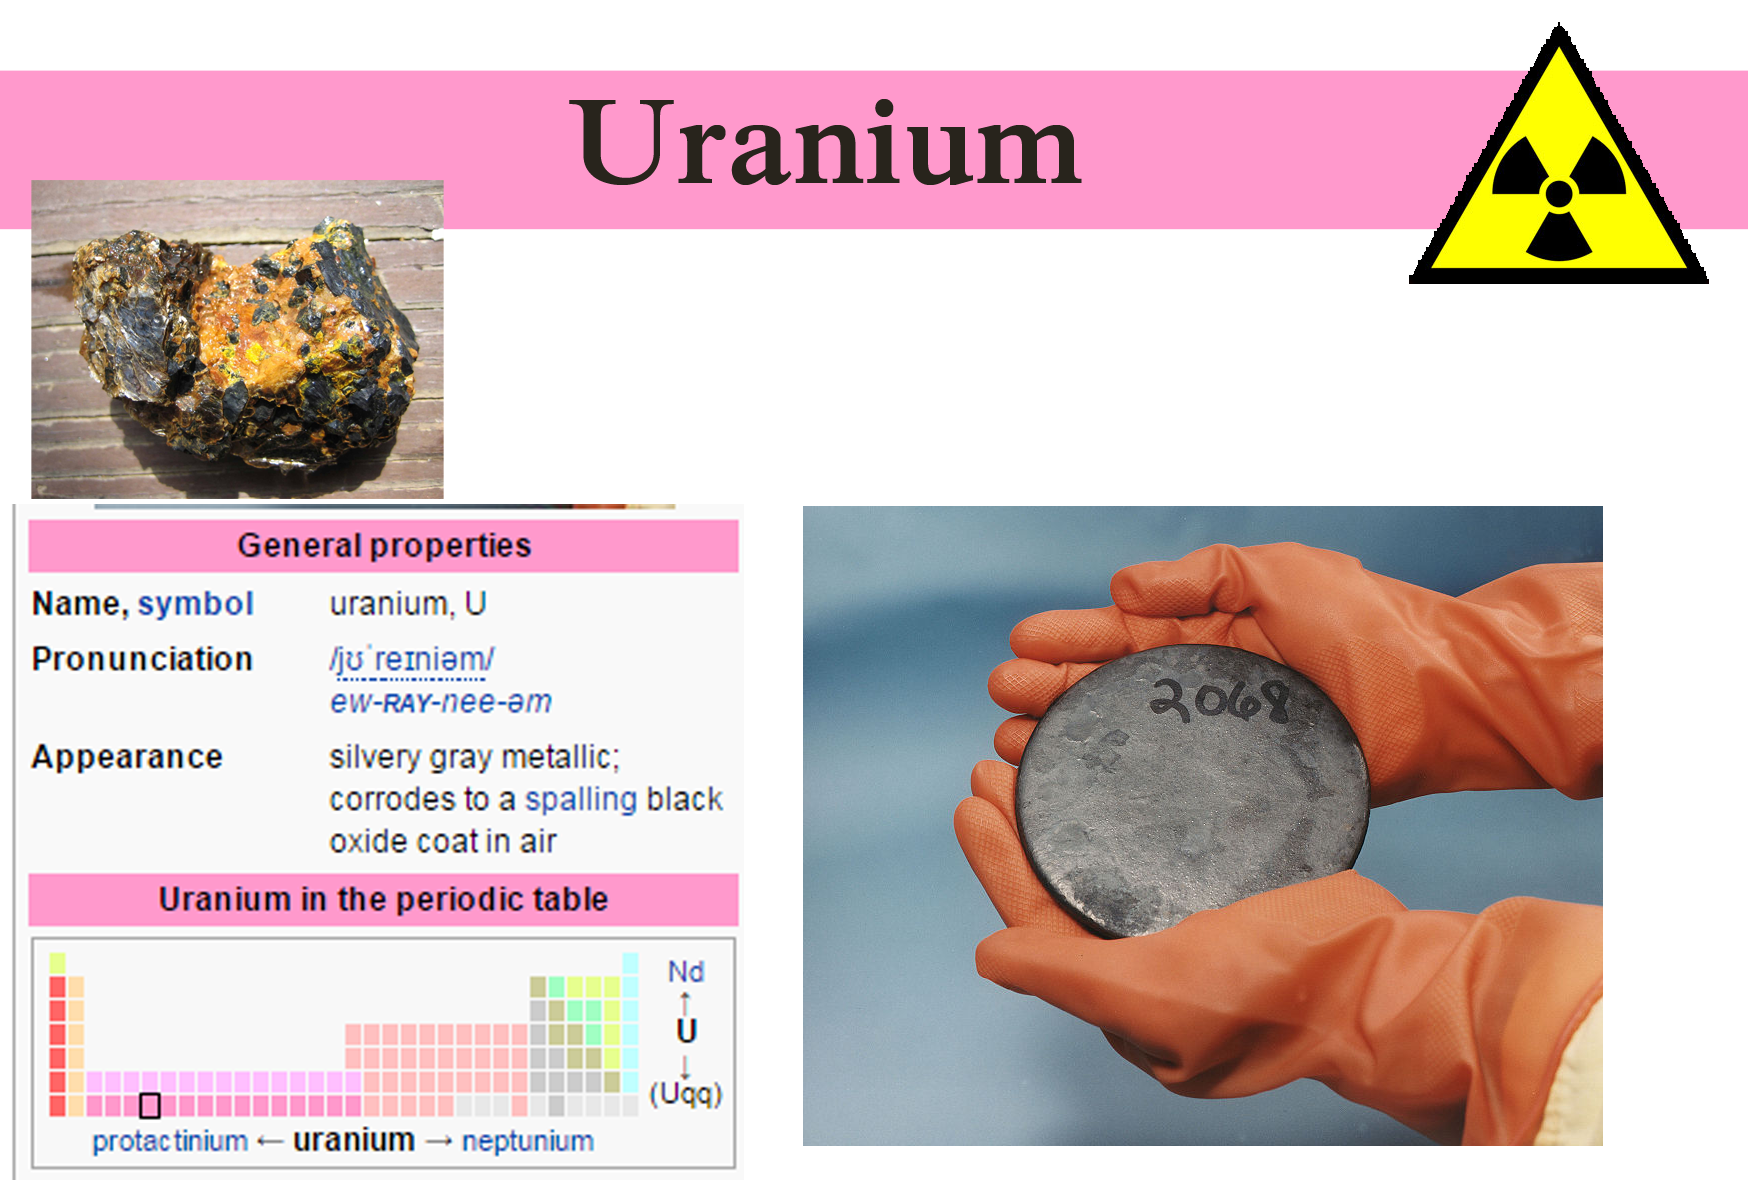 Uranium galnet wiki fandom powered by wikia uranium is a chemical element with symbol u and atomic number 92 it is a silvery white metal in the actinide series of the periodic table gamestrikefo Gallery